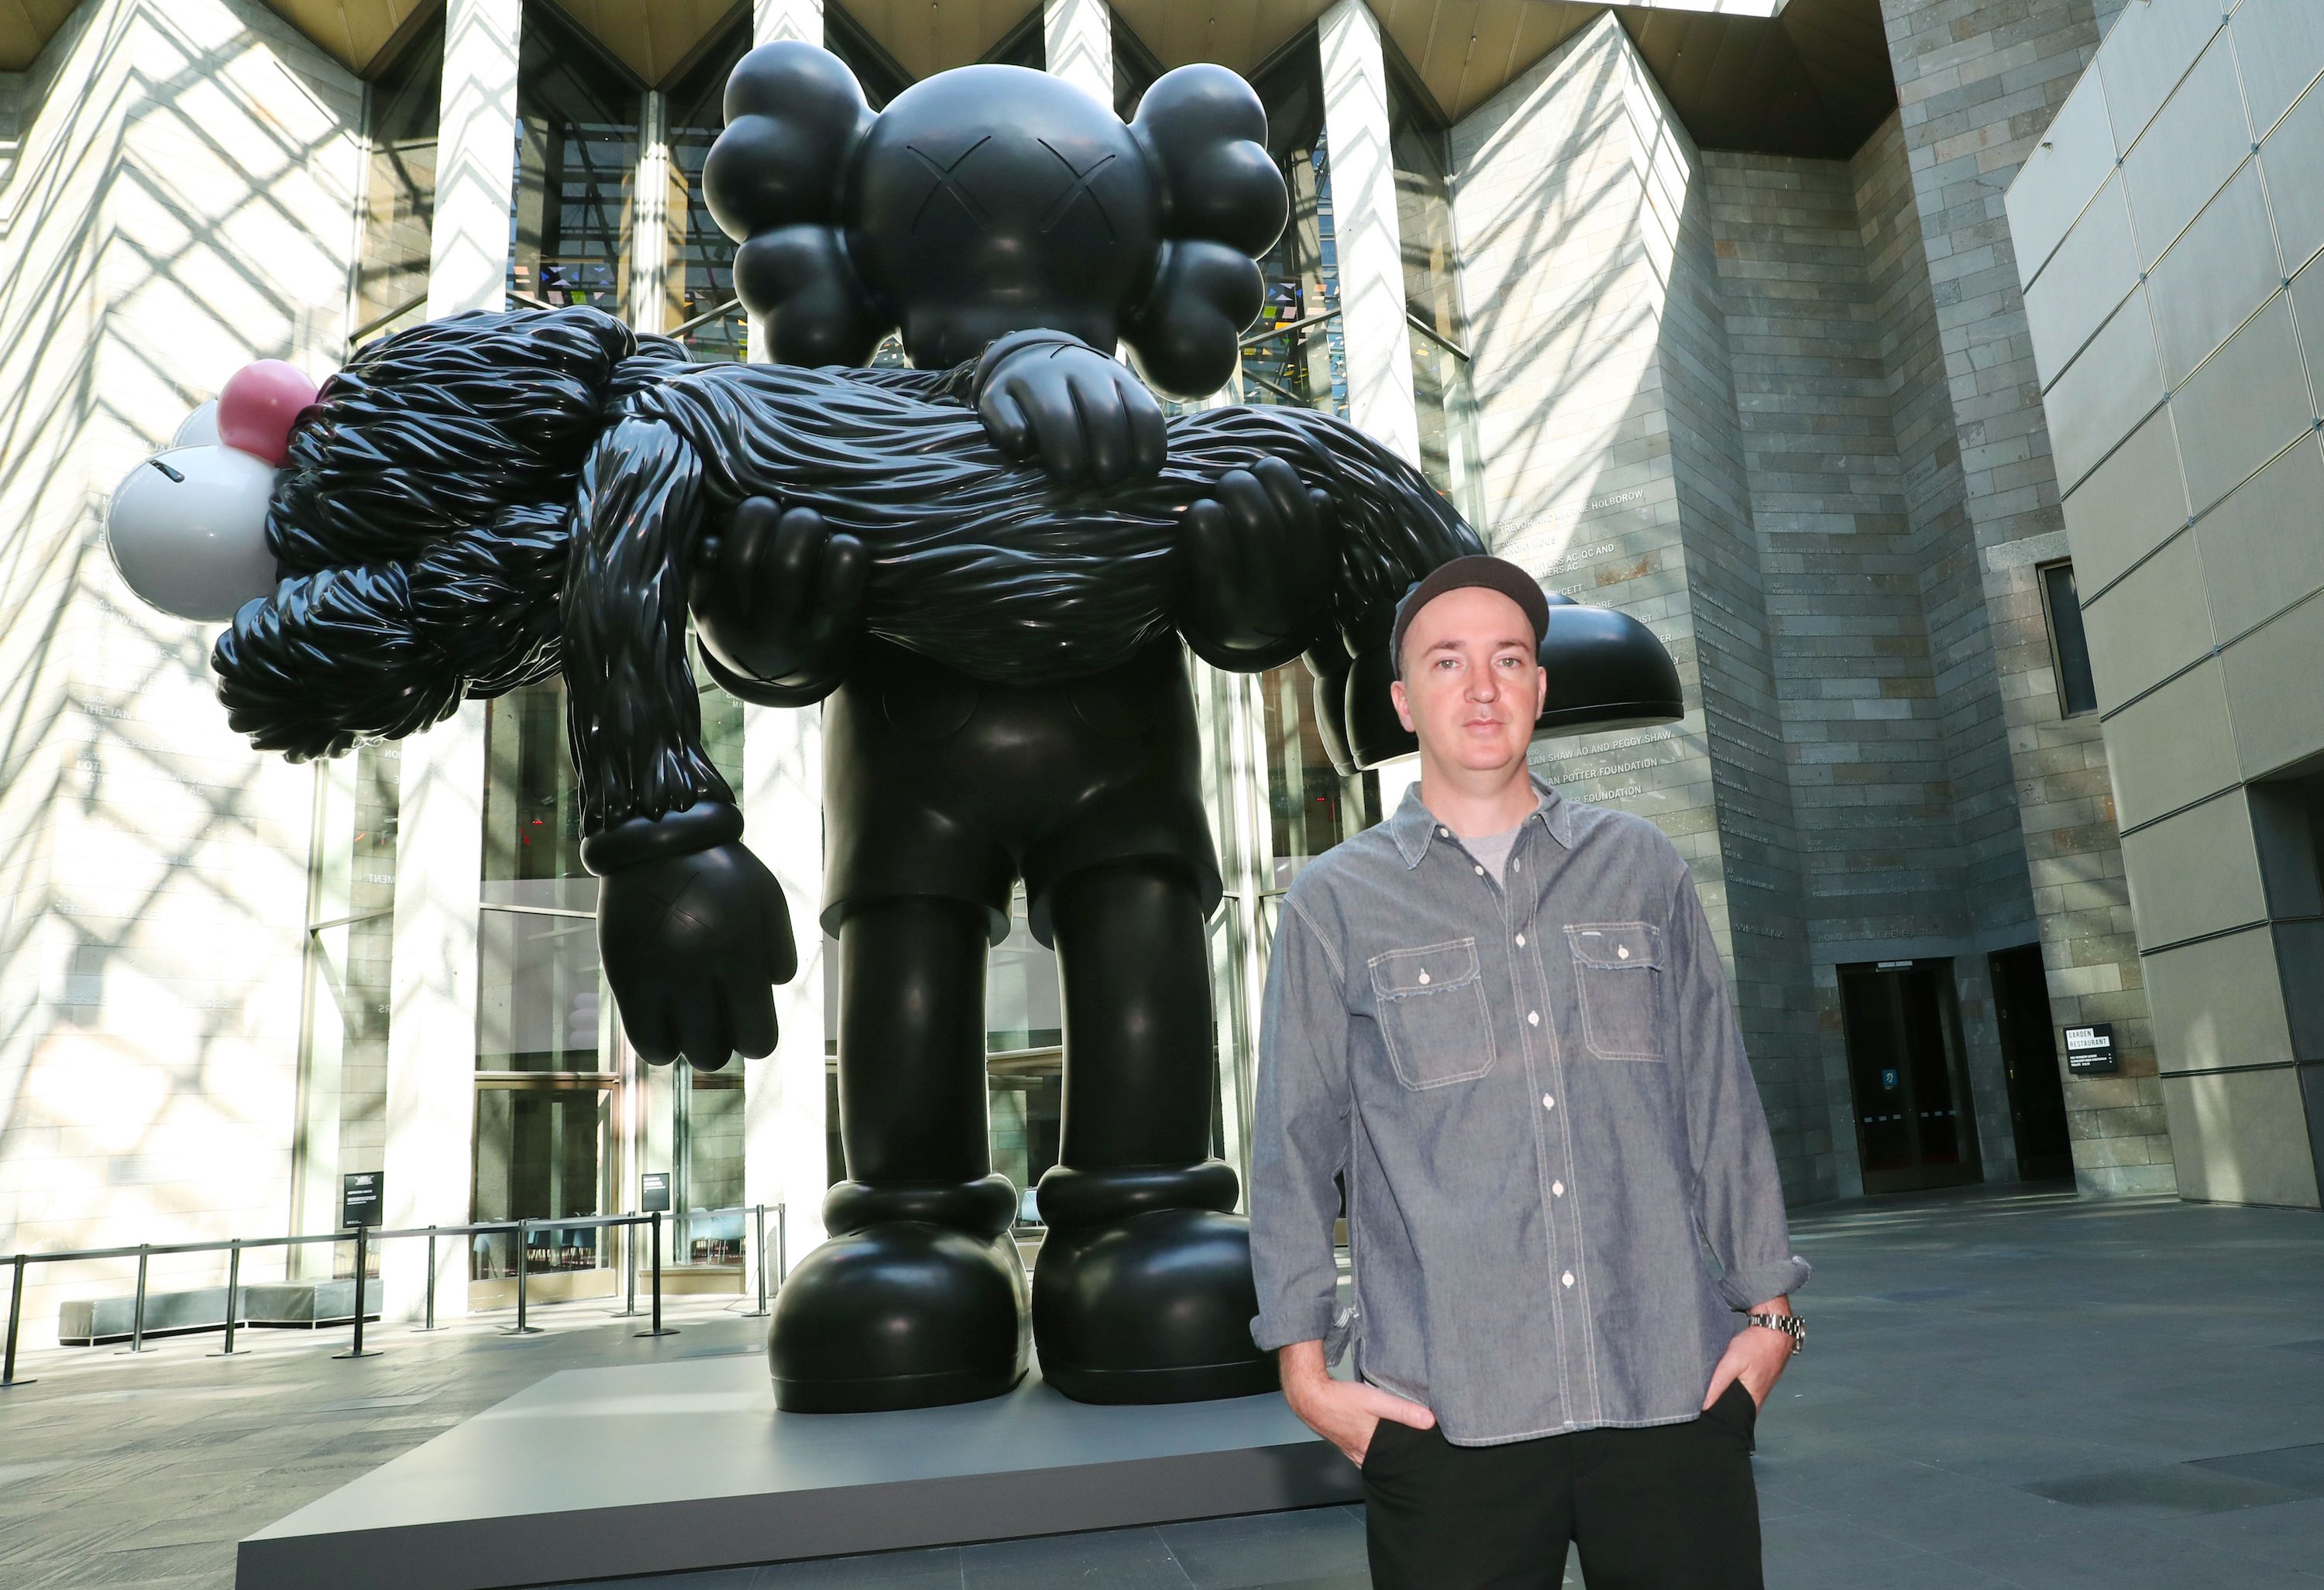 KAWS Pays $17 M. for Brooklyn Building, Contested Banksy Sculpture Withdrawn from Auction, and More: Morning Links from November 19, 2019